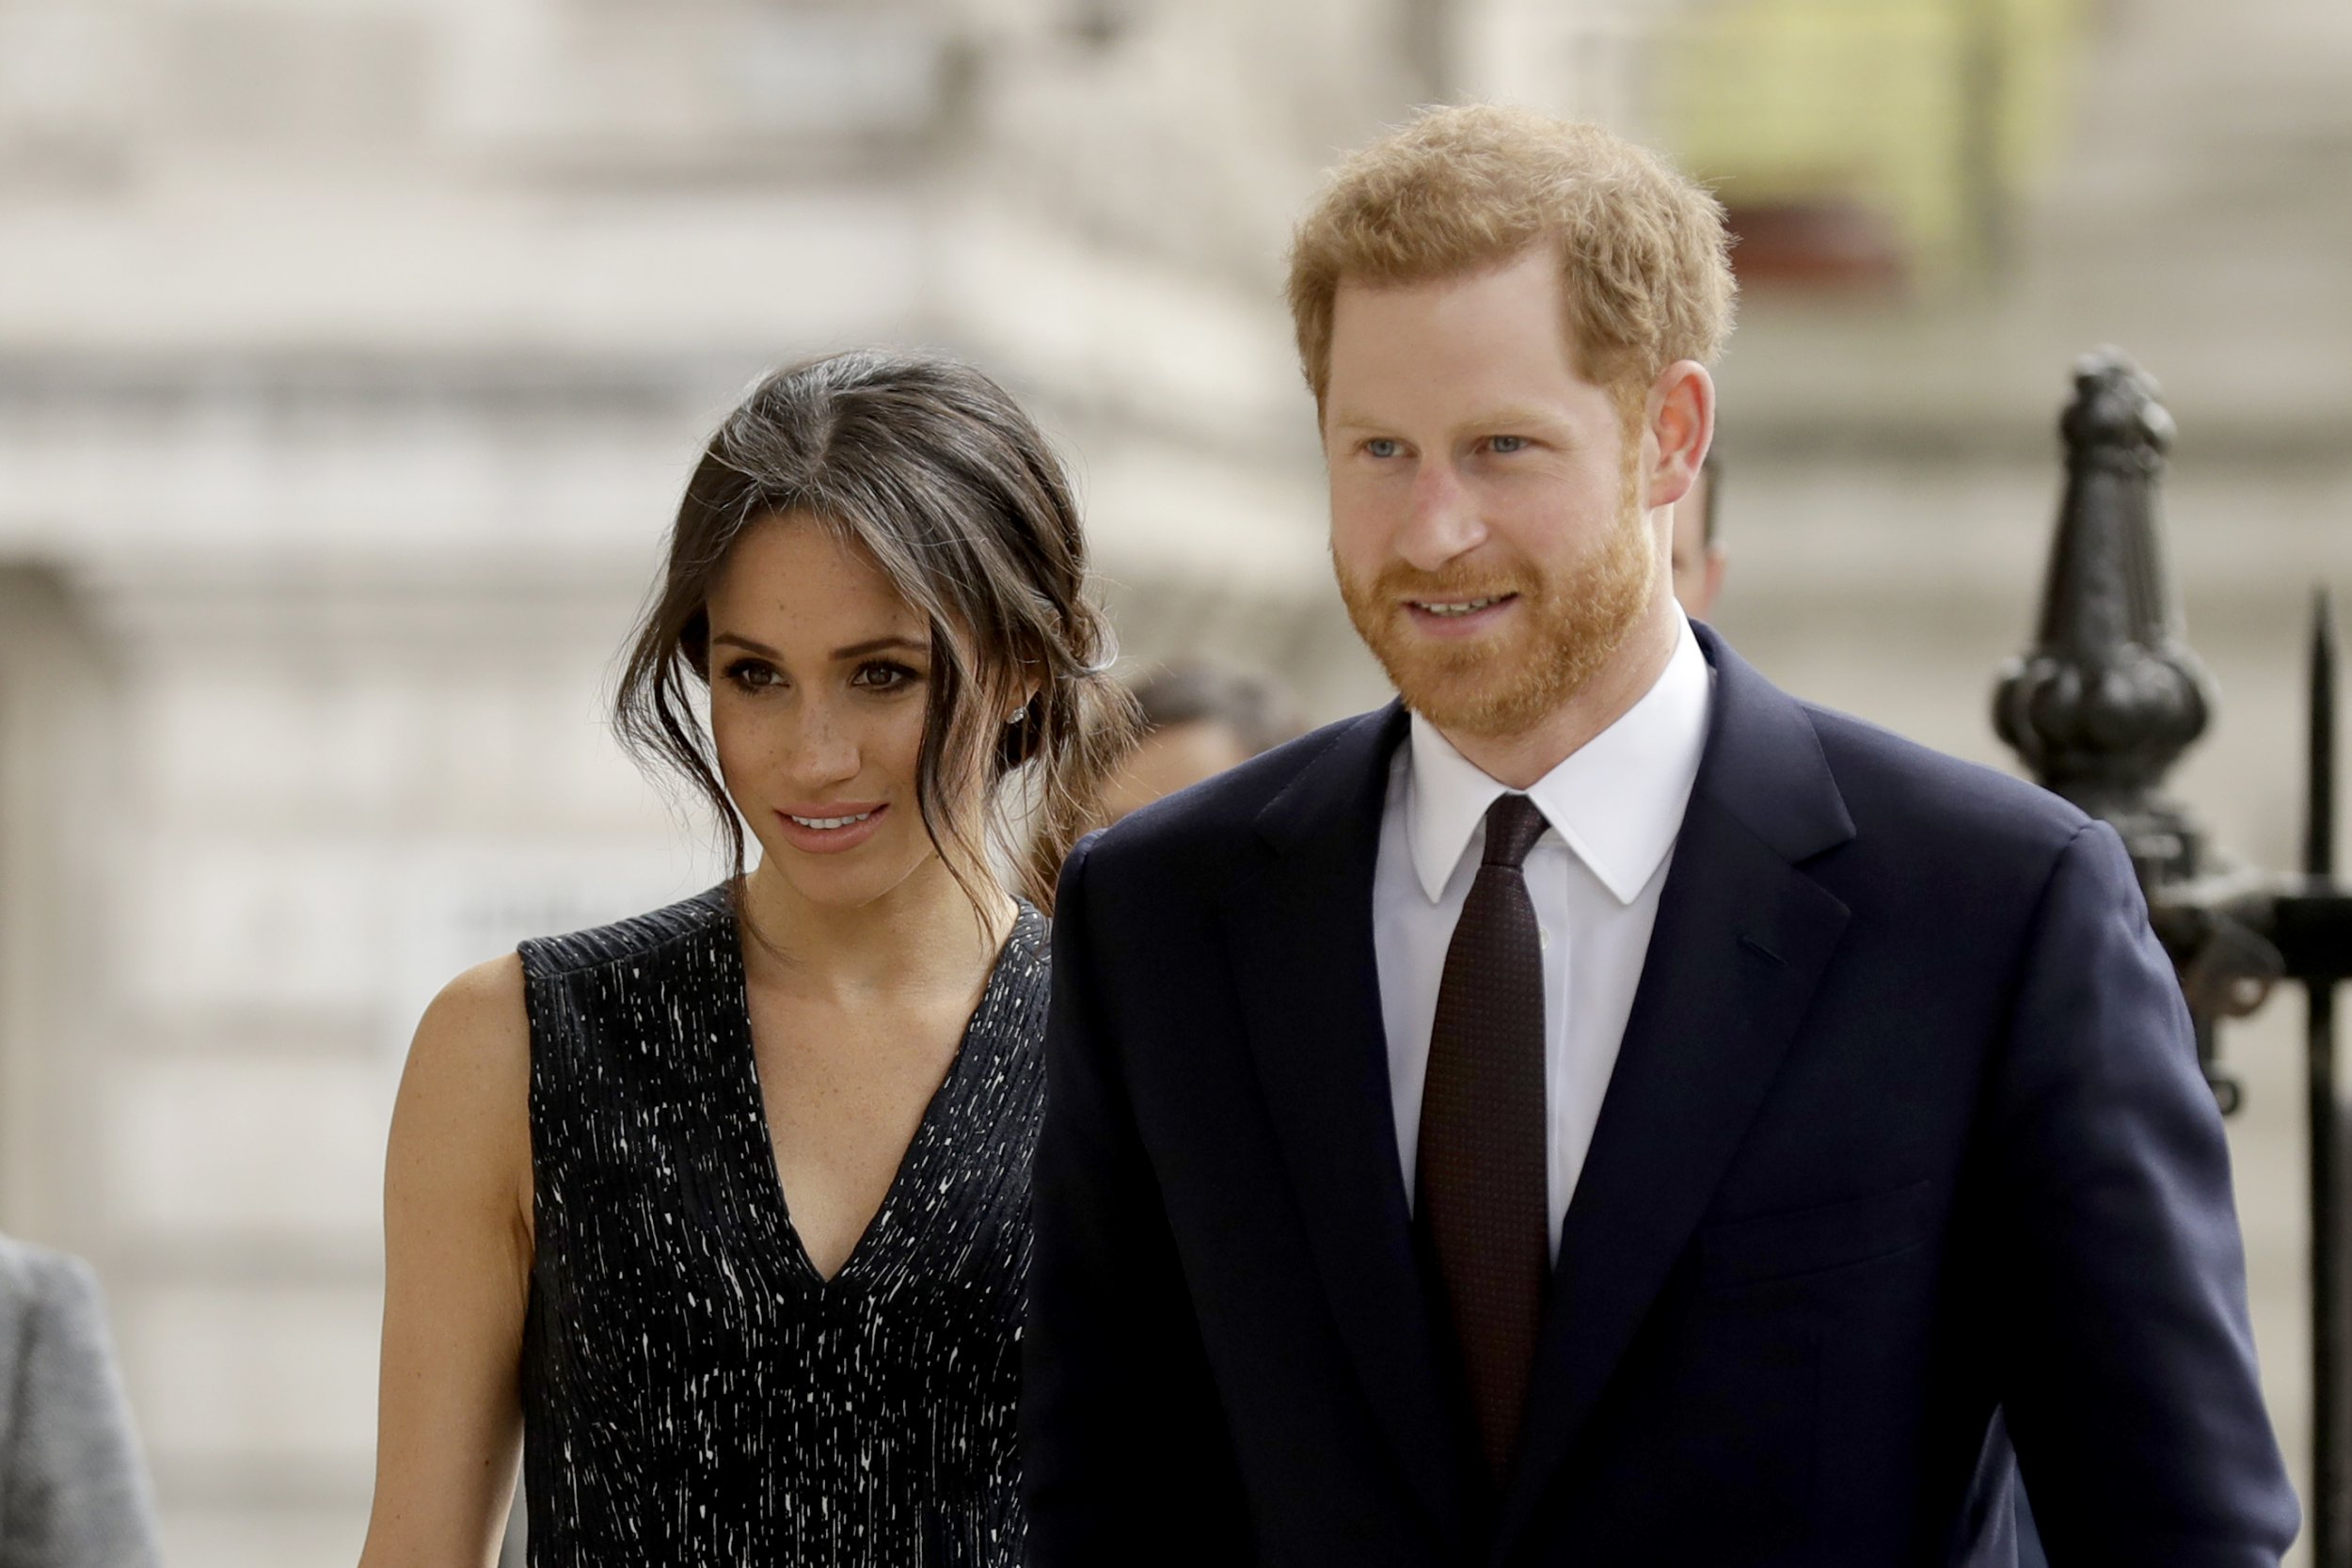 Britain's Prince Harry and his fiancee Meghan Markle arrive to attend a Memorial Service to commemorate the 25th anniversary of the murder of black teenager Stephen Lawrence at St Martin-in-the-Fields church in London, Monday, April 23, 2018. (AP Photo/Matt Dunham)